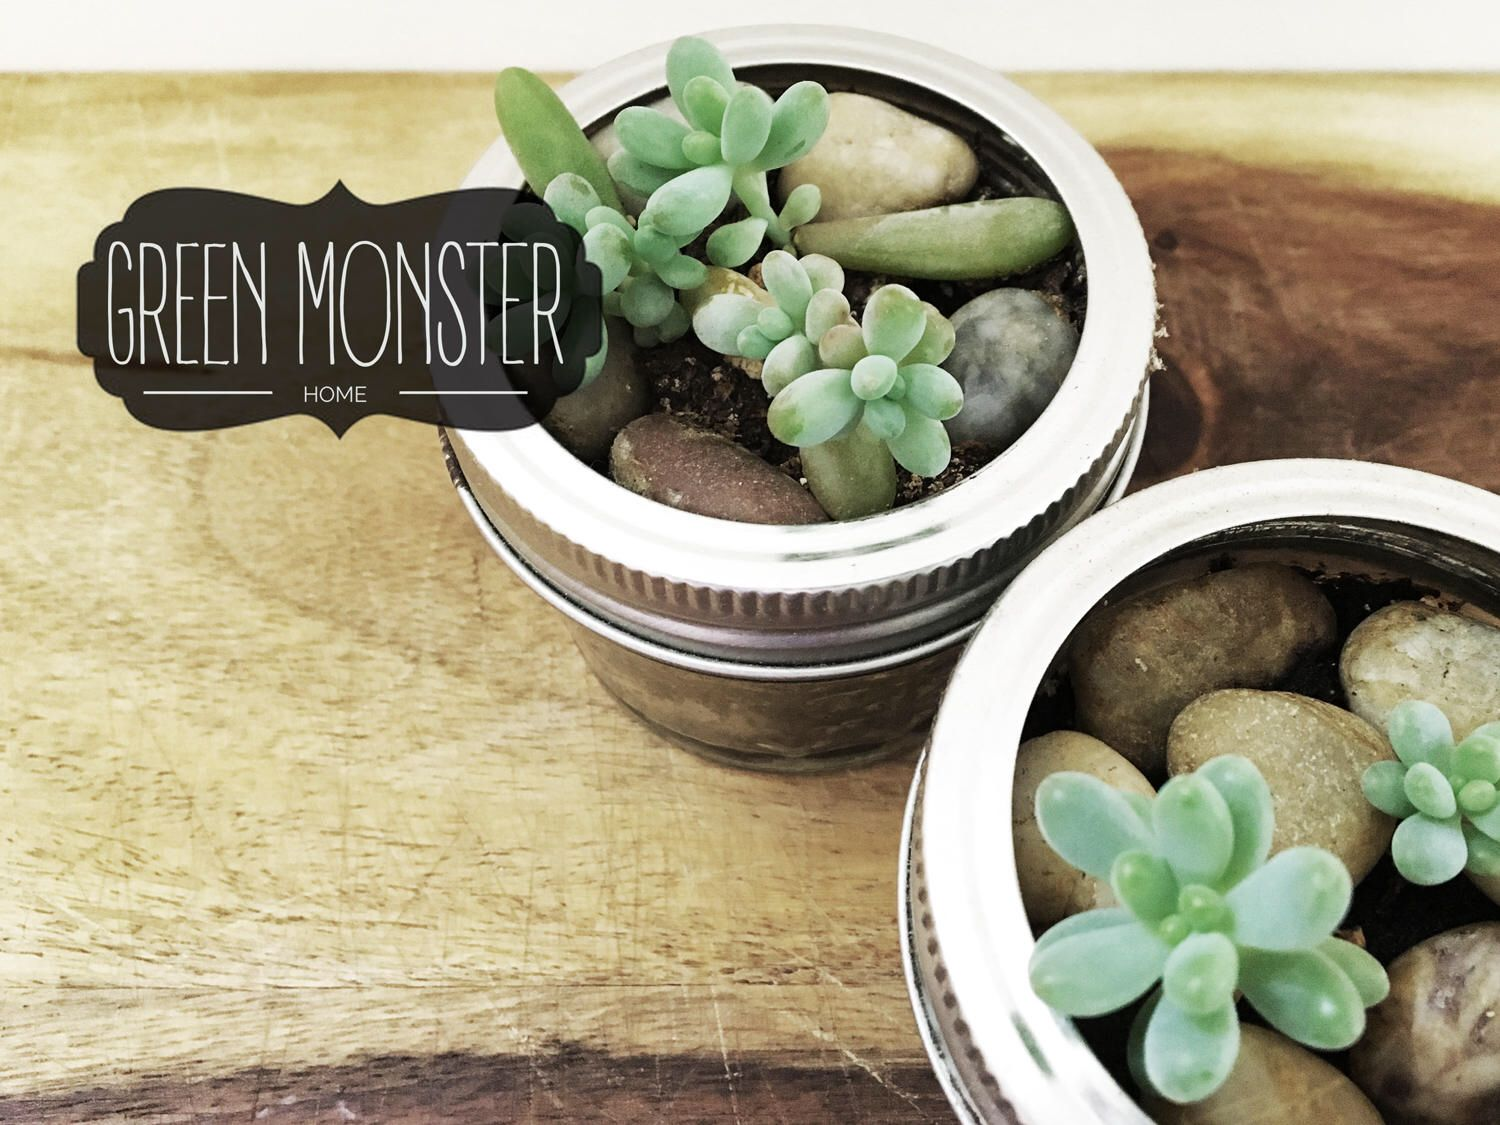 Live Succulent Plant Jelly Bean Plant For Your Desk Plants Size 5 1 5 Inch In Cute Glass Jar Sma Small Gifts For Coworkers Gifts For Coworkers Succulents